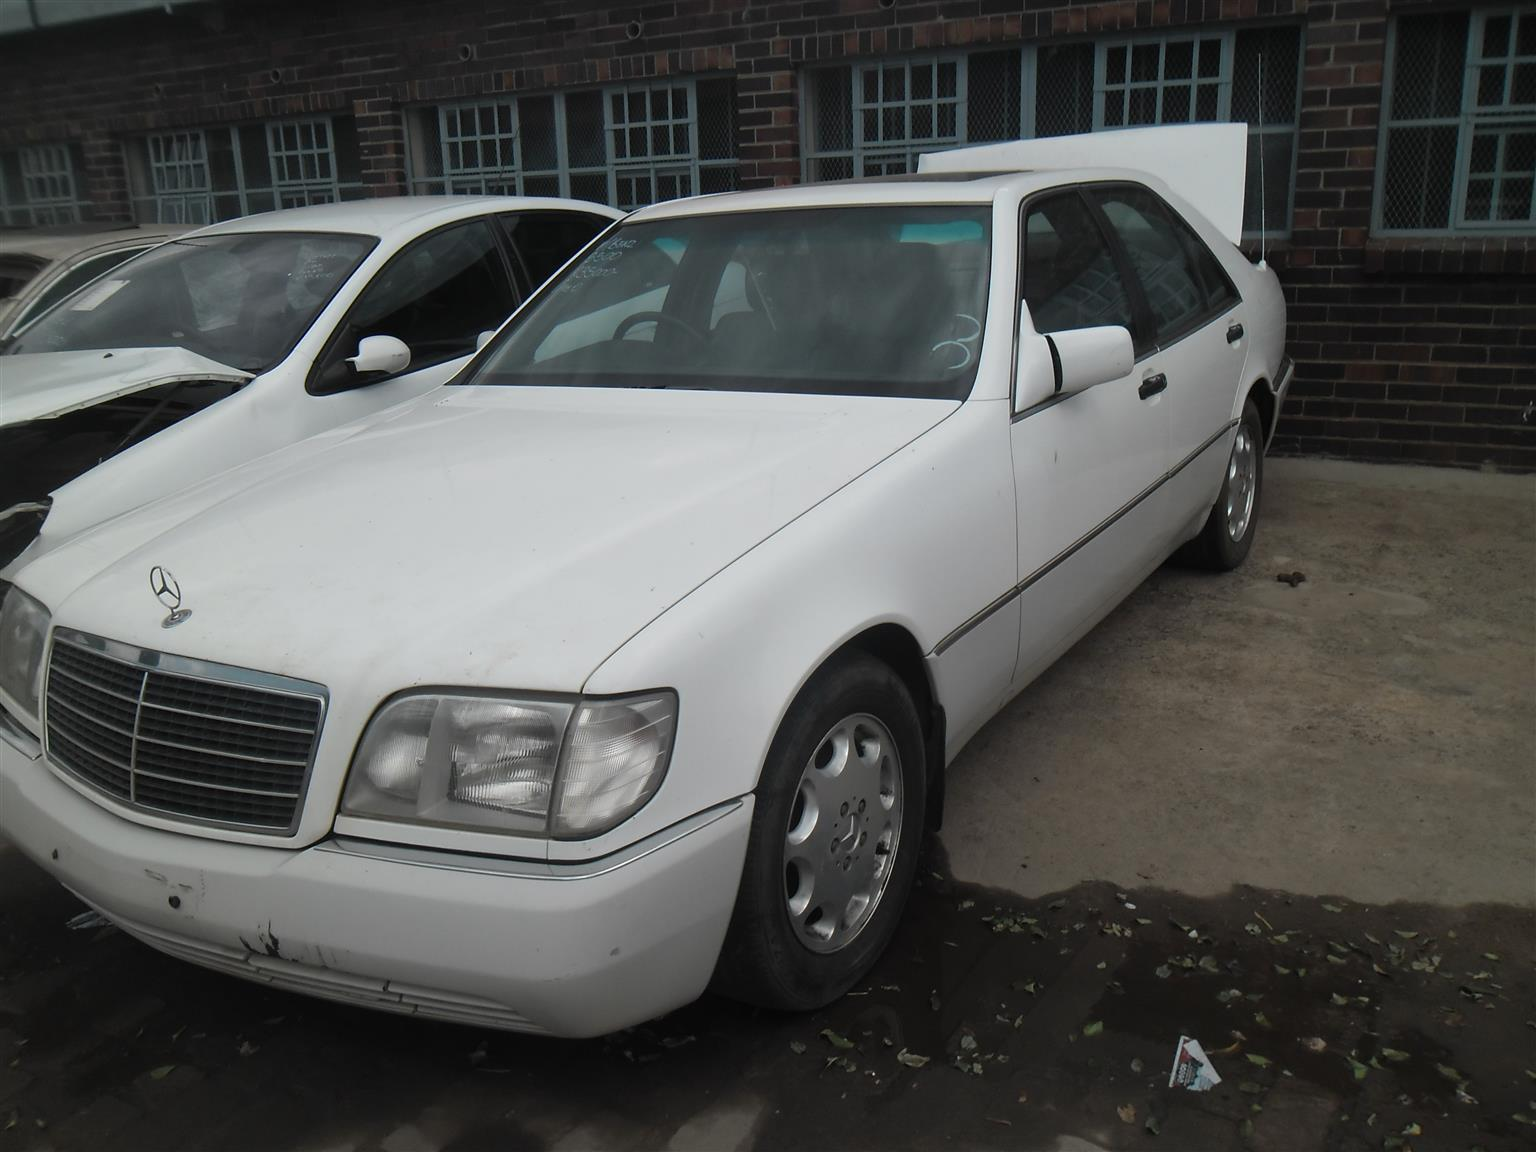 Mercedes benz s500 w140 stripping for spares gearbox for for Aftermarket parts for mercedes benz